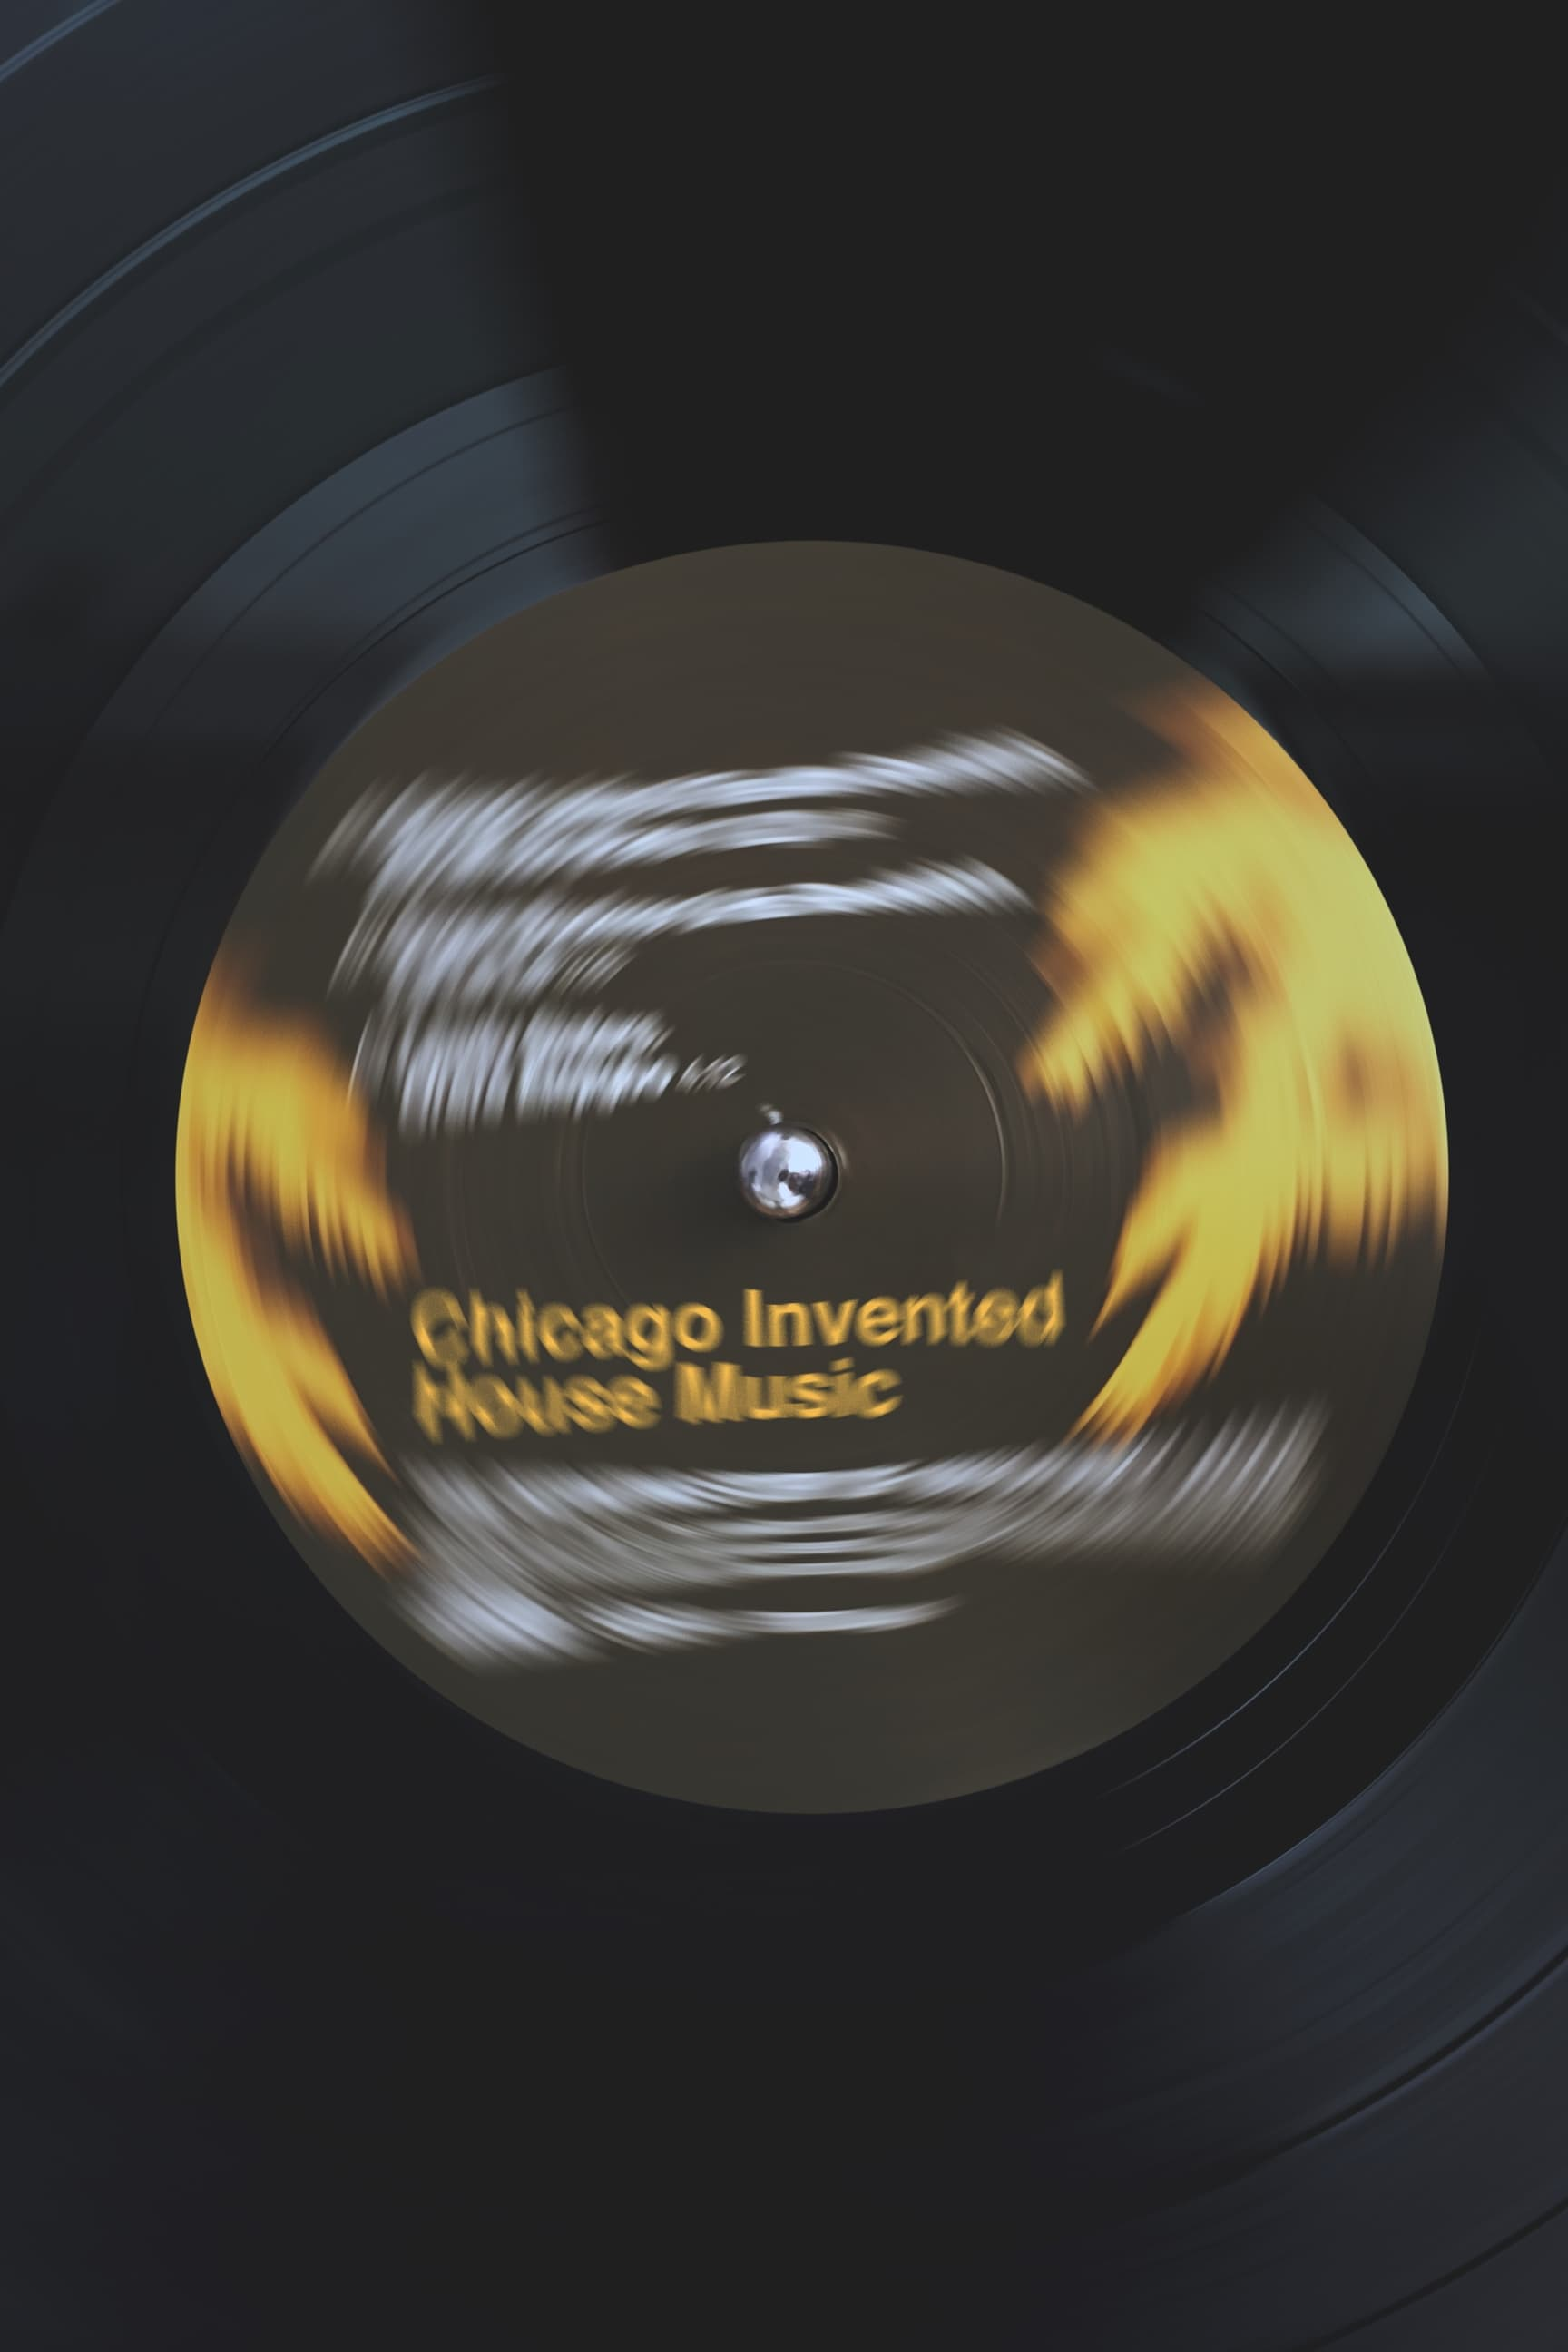 Chicago Invented House Music (2019)